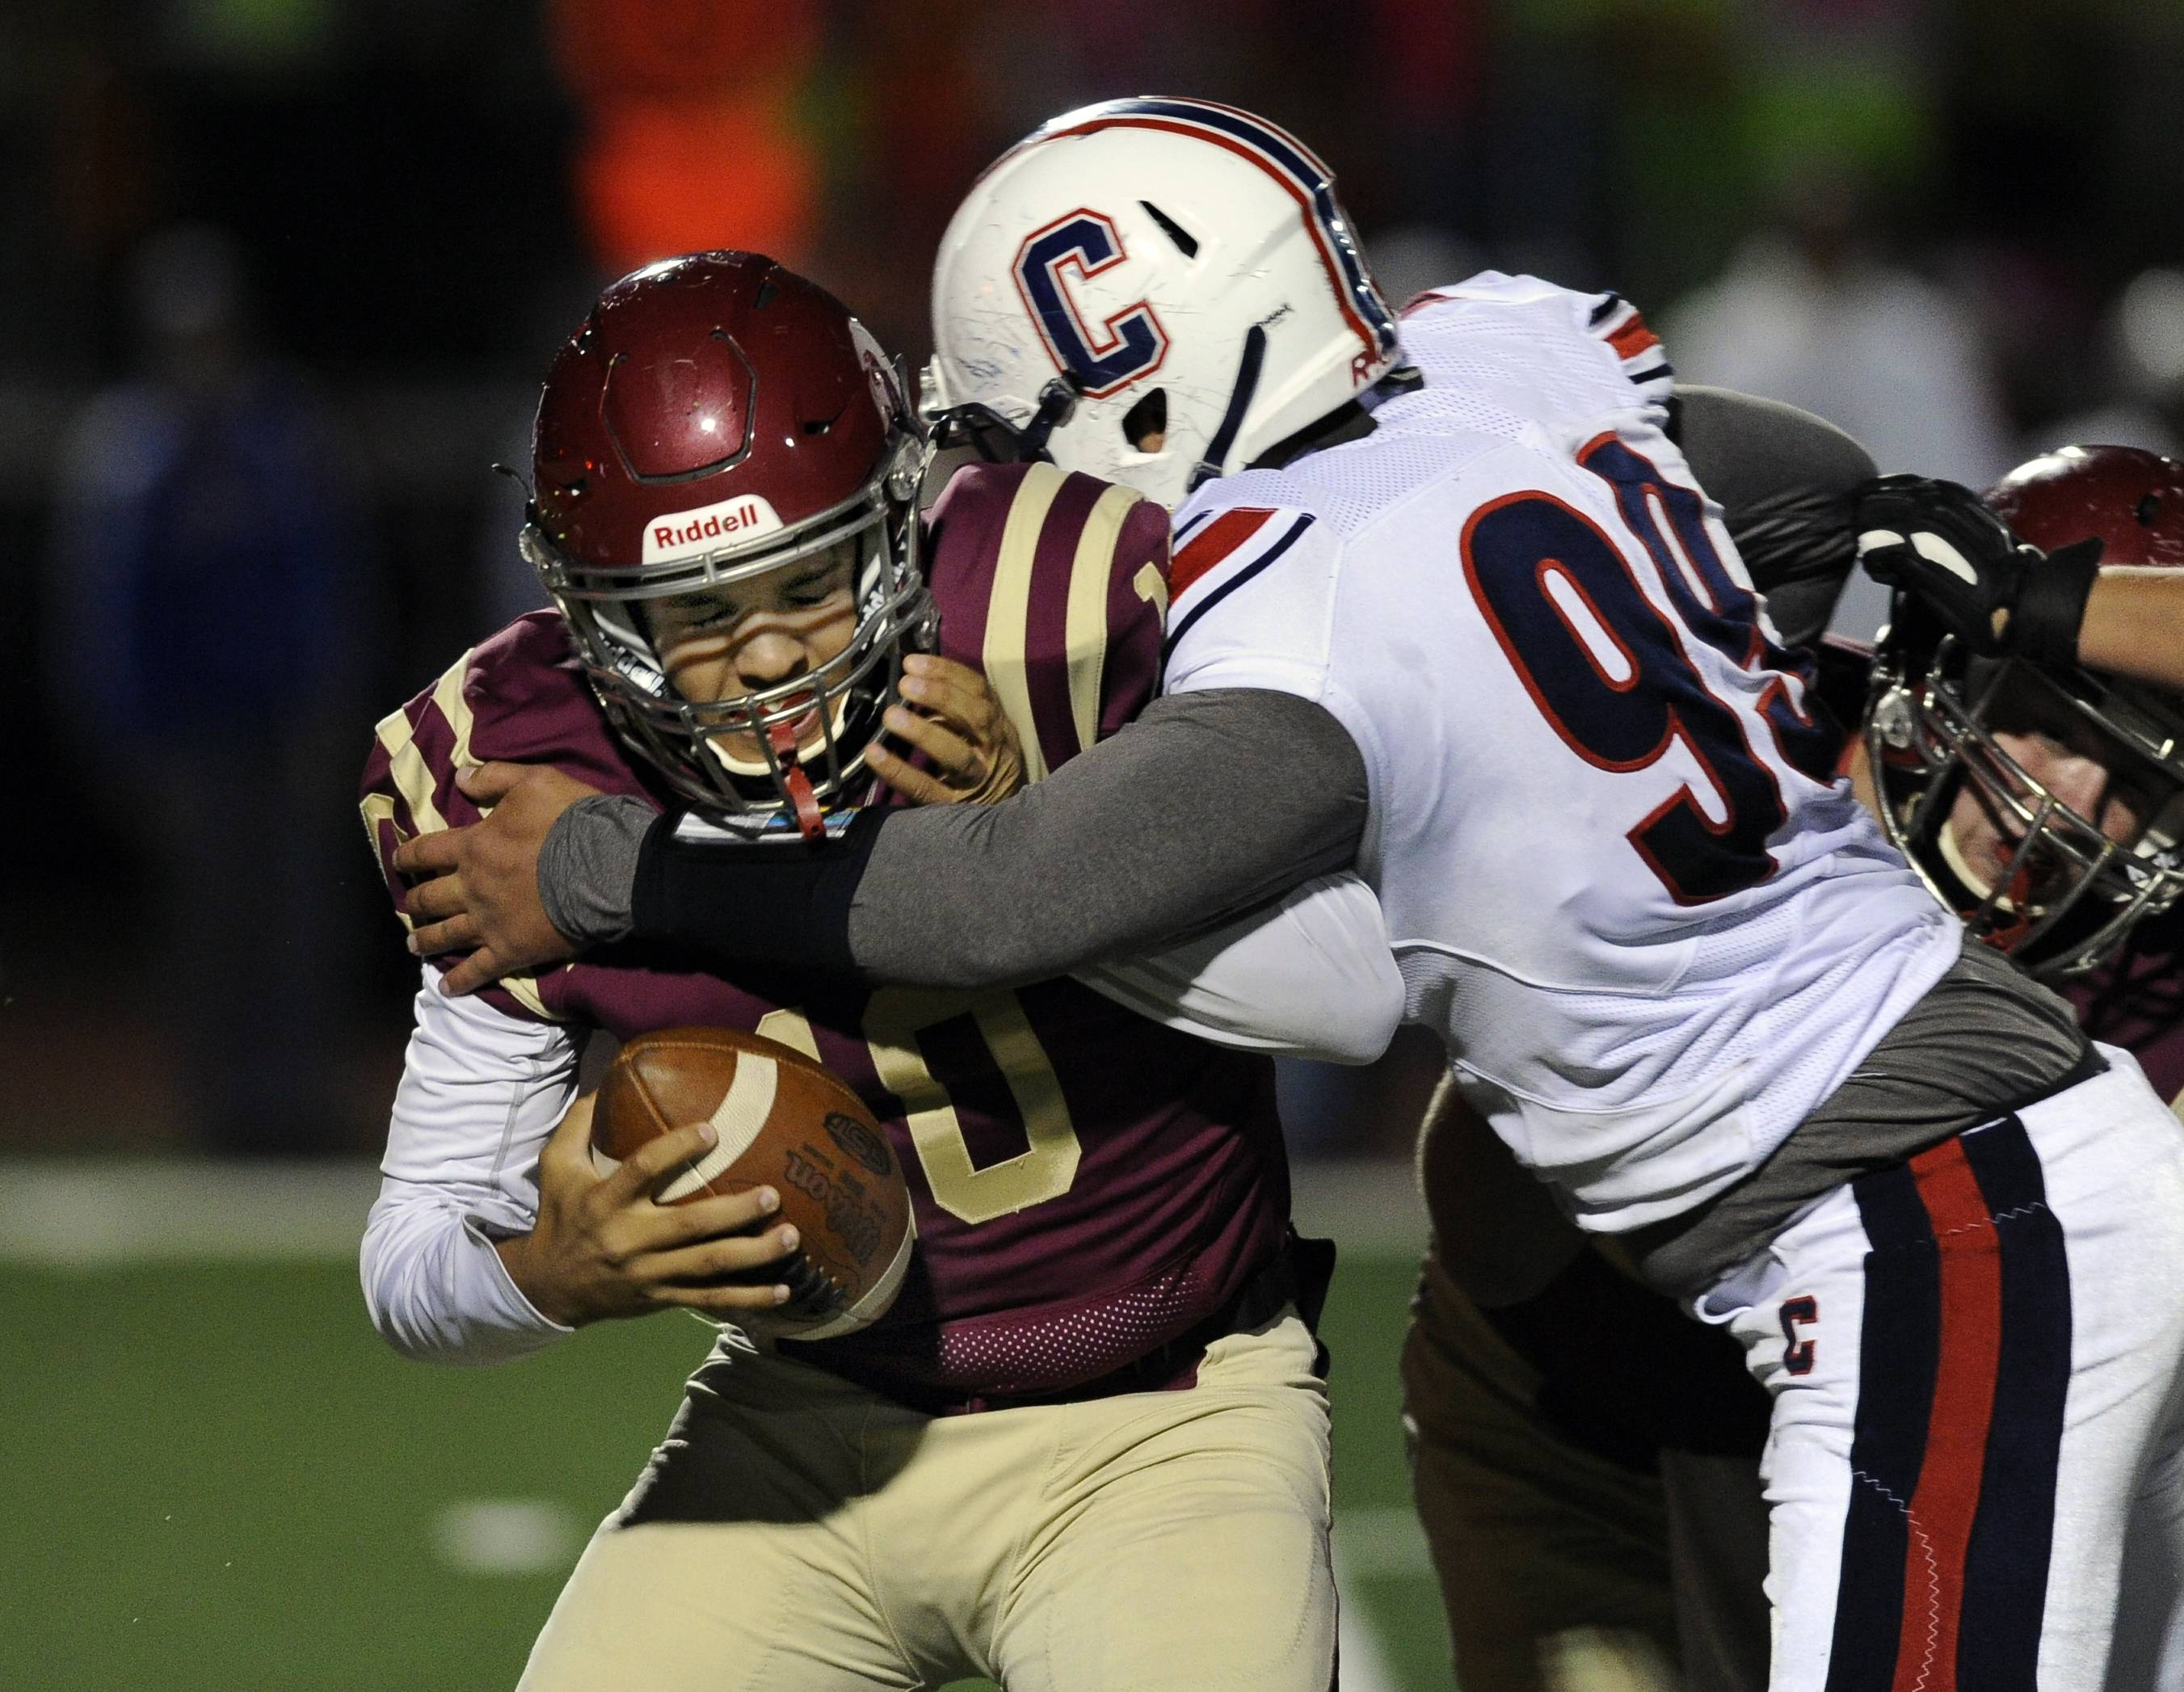 Schaumburg quarterback Marcus Ross is sacked by Conant's Frank Daidone earlier this season. Schaumburg takes on Barrington Friday night while Conant hosts Palatine.